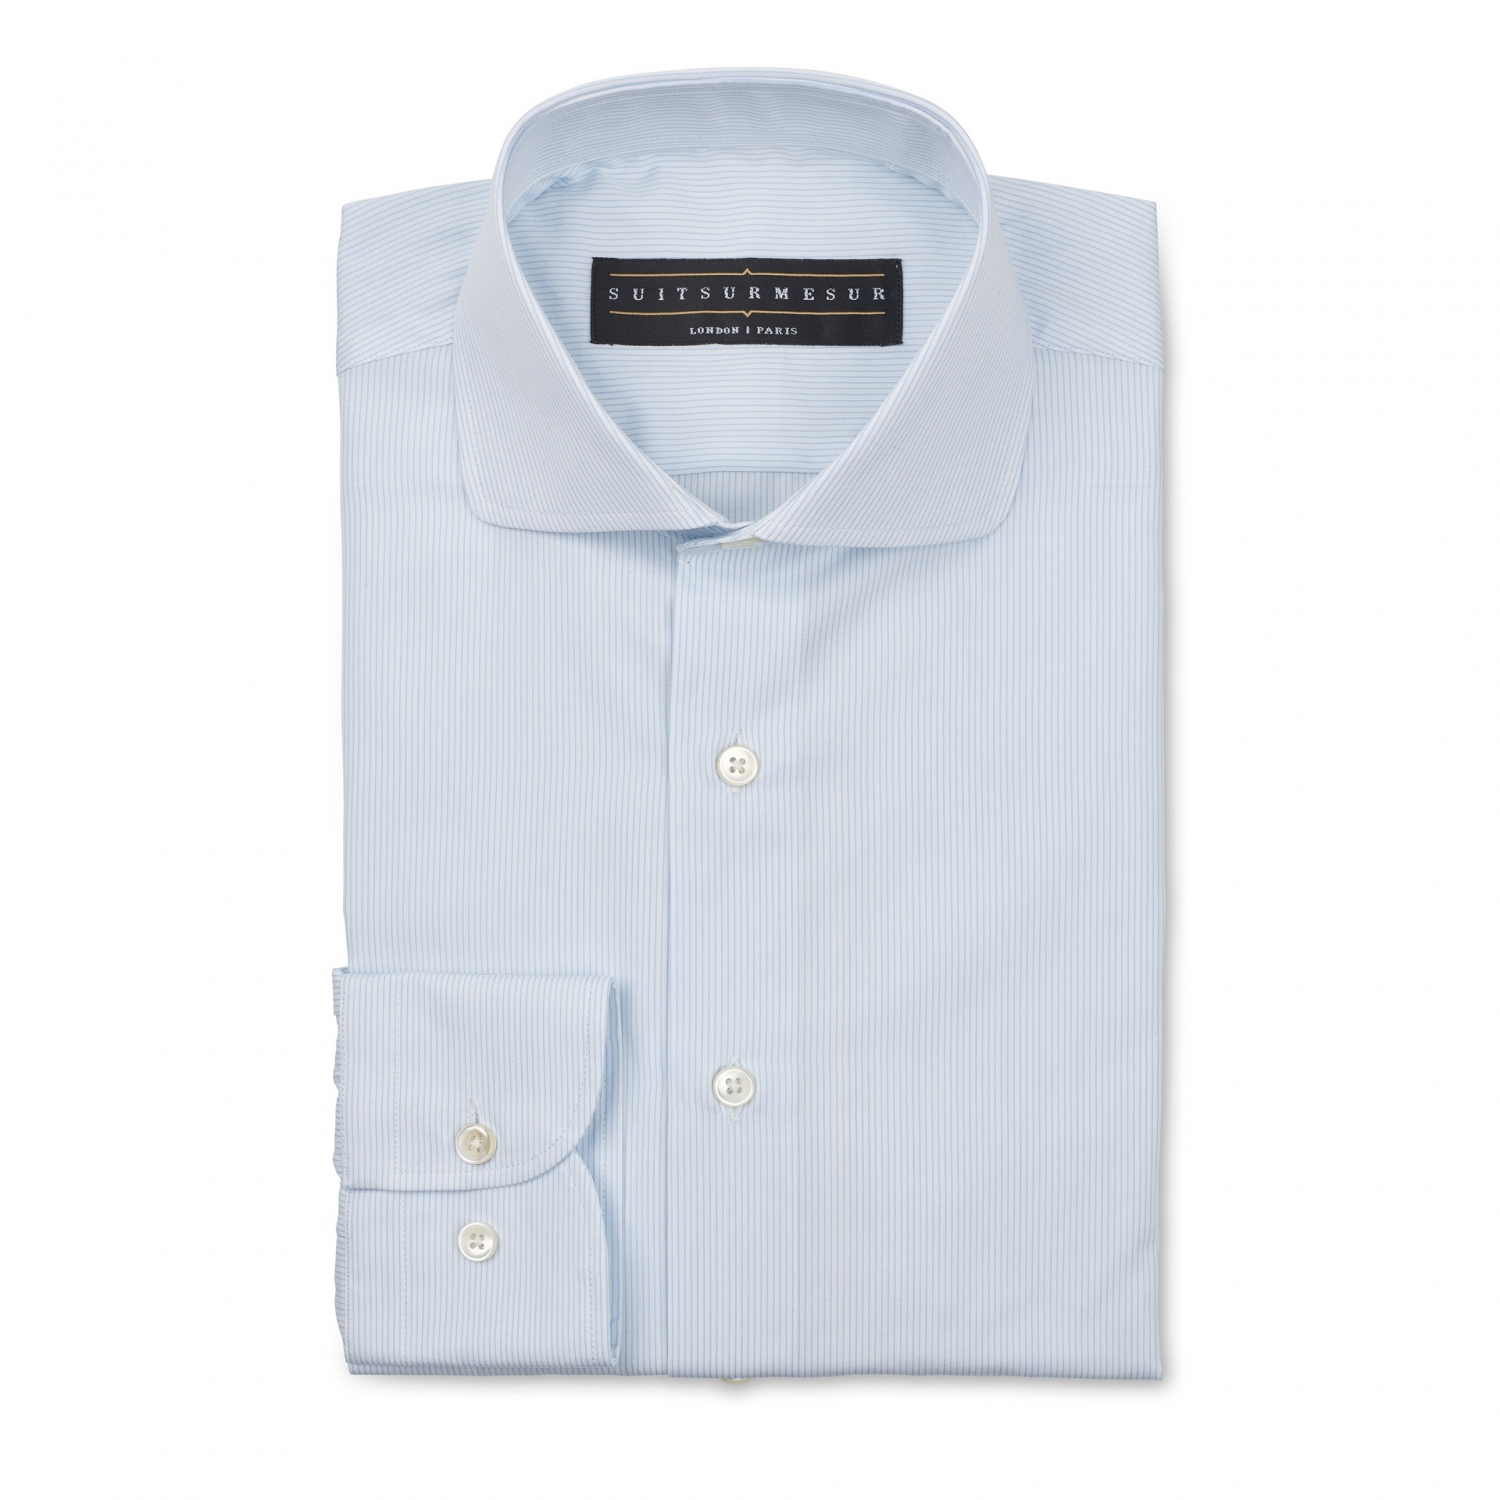 Light blue stripe poplin (half Italian collar) shirt – 100% cotton Canclini fabric